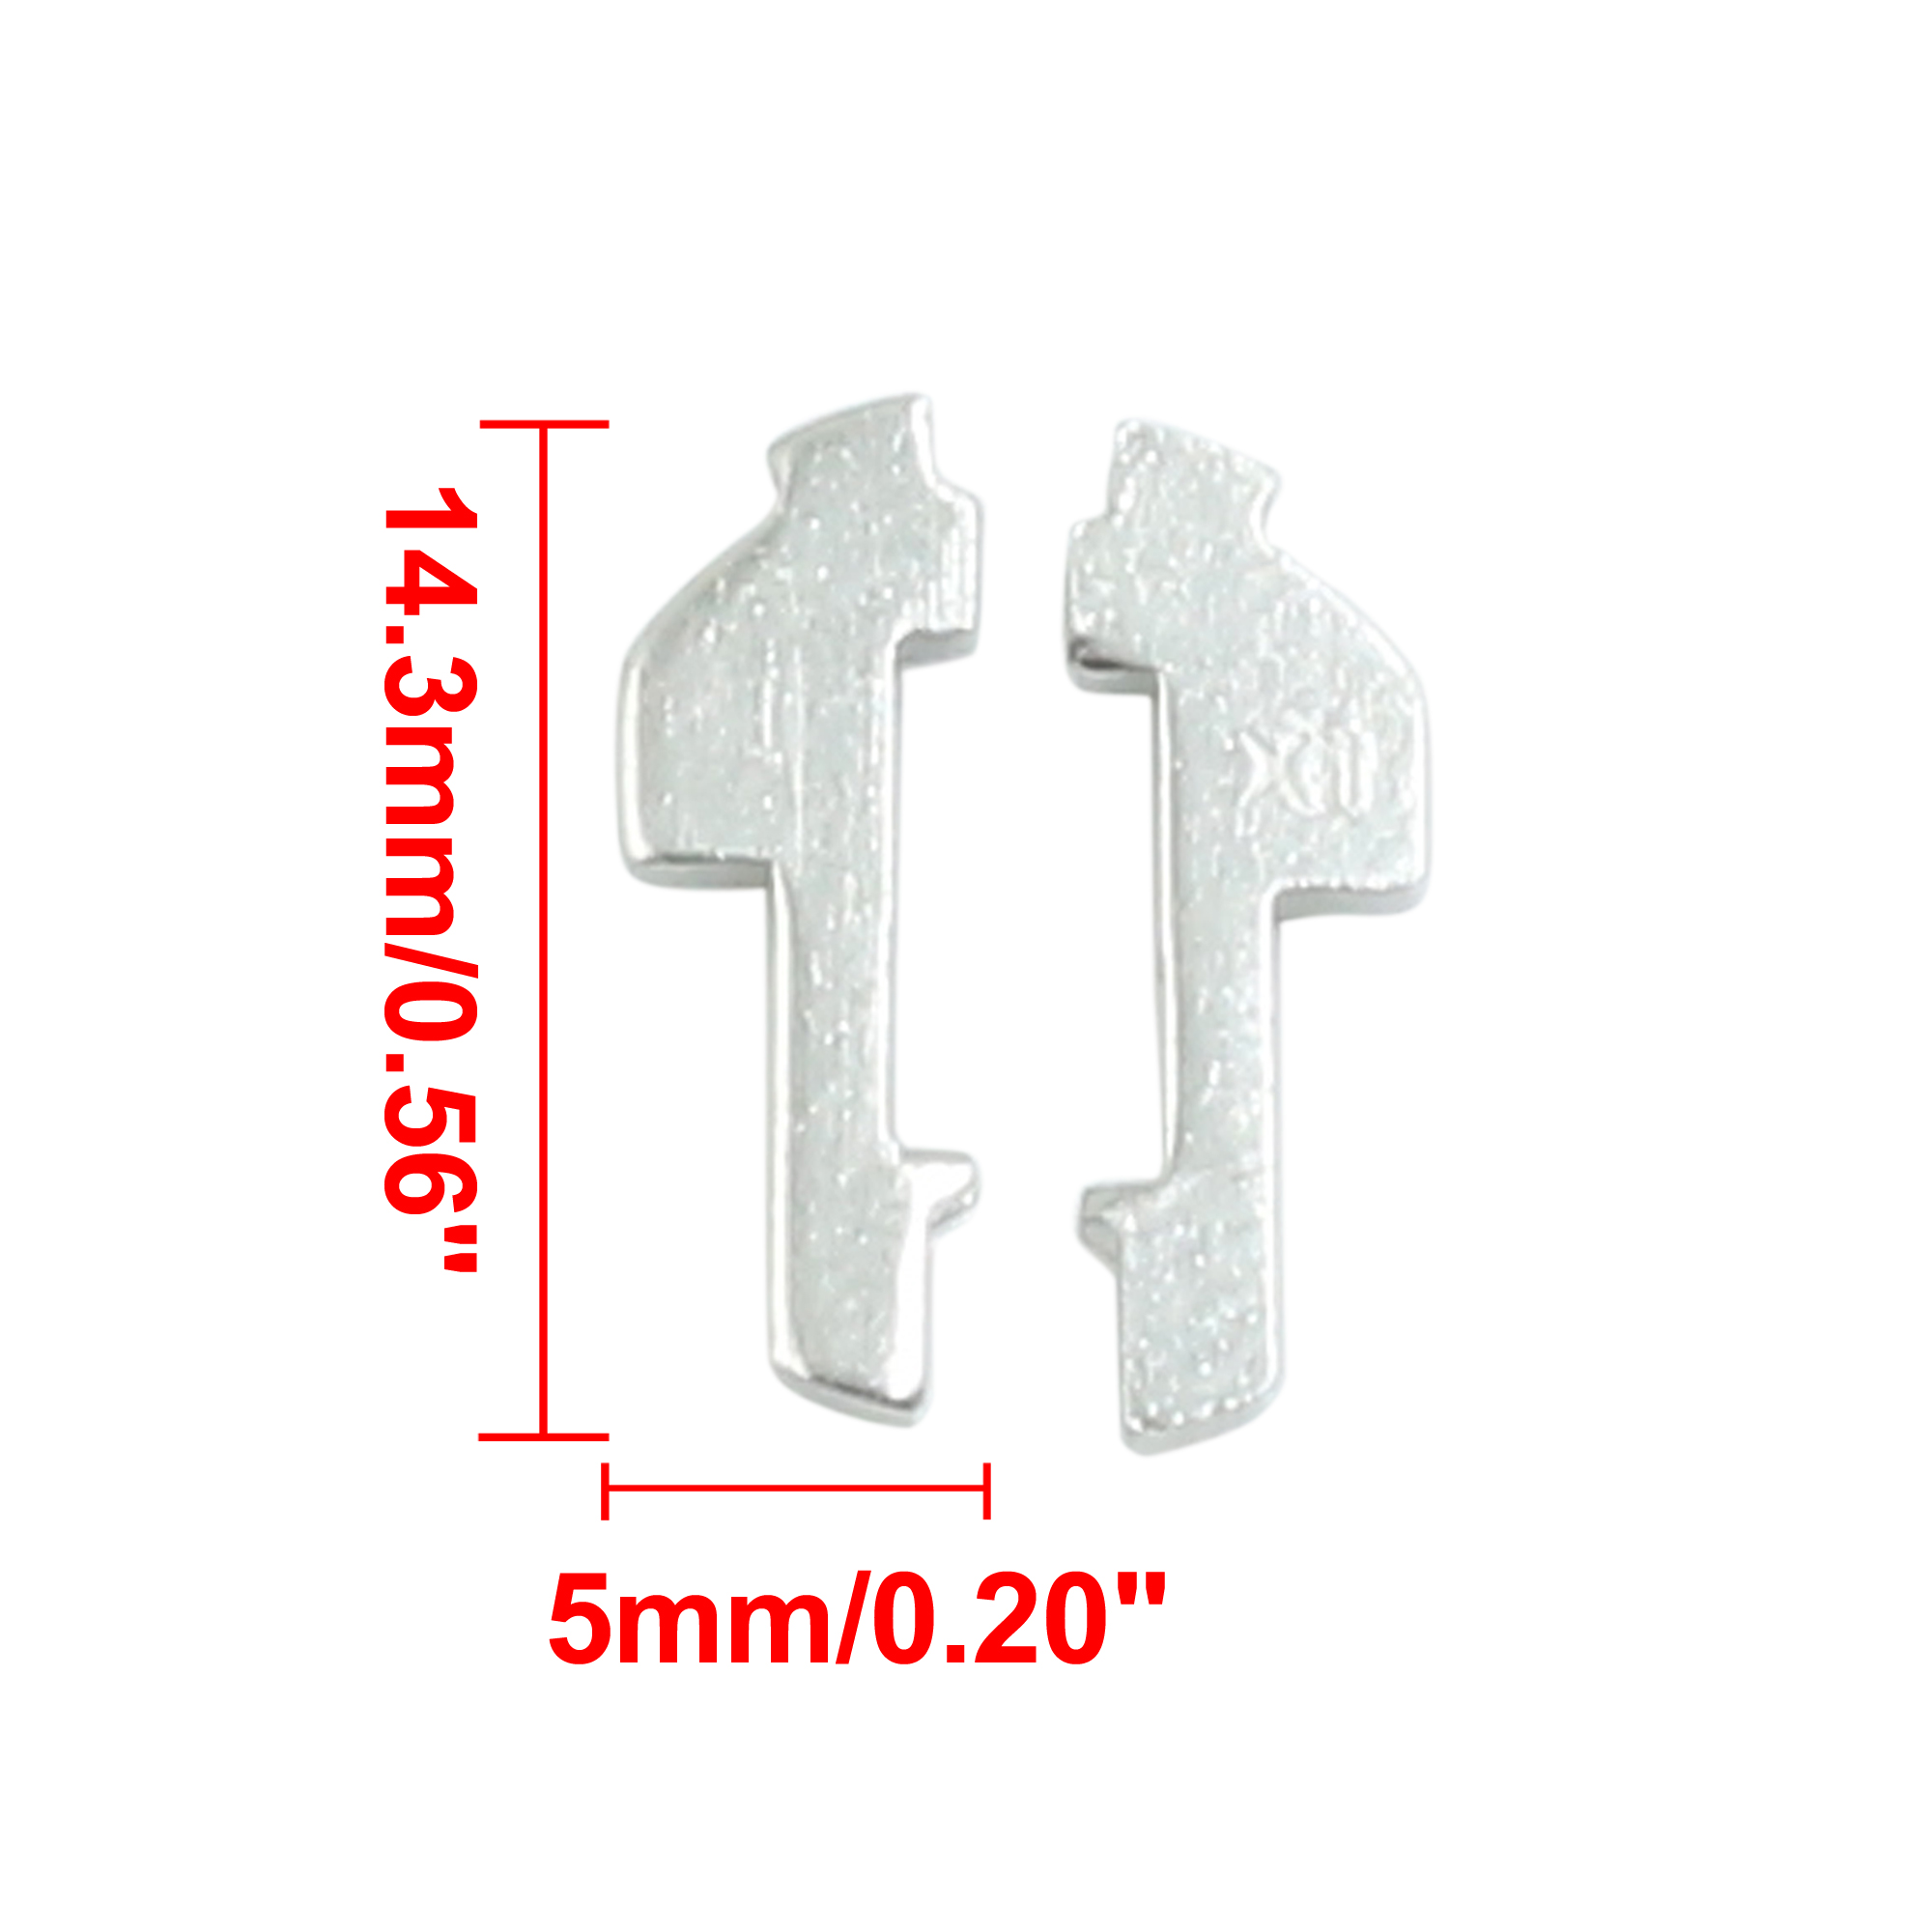 30pcs 14.3mm x 5mm Car Ignition Lock Cylinder Reed Auto Locking Plate for Honda - image 1 de 2